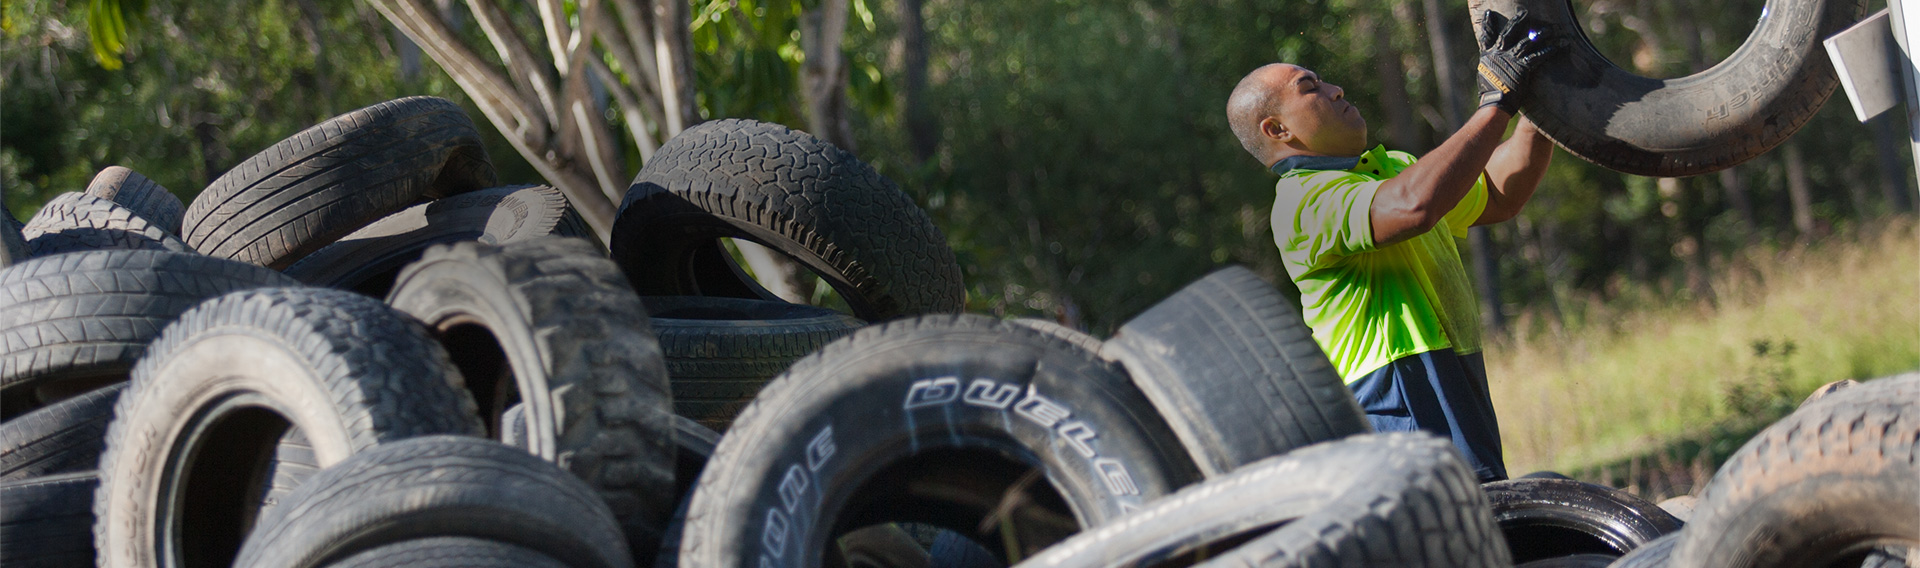 Waste Tyre Collection Services Brisbane - Australian Scrap Tyre Disposals